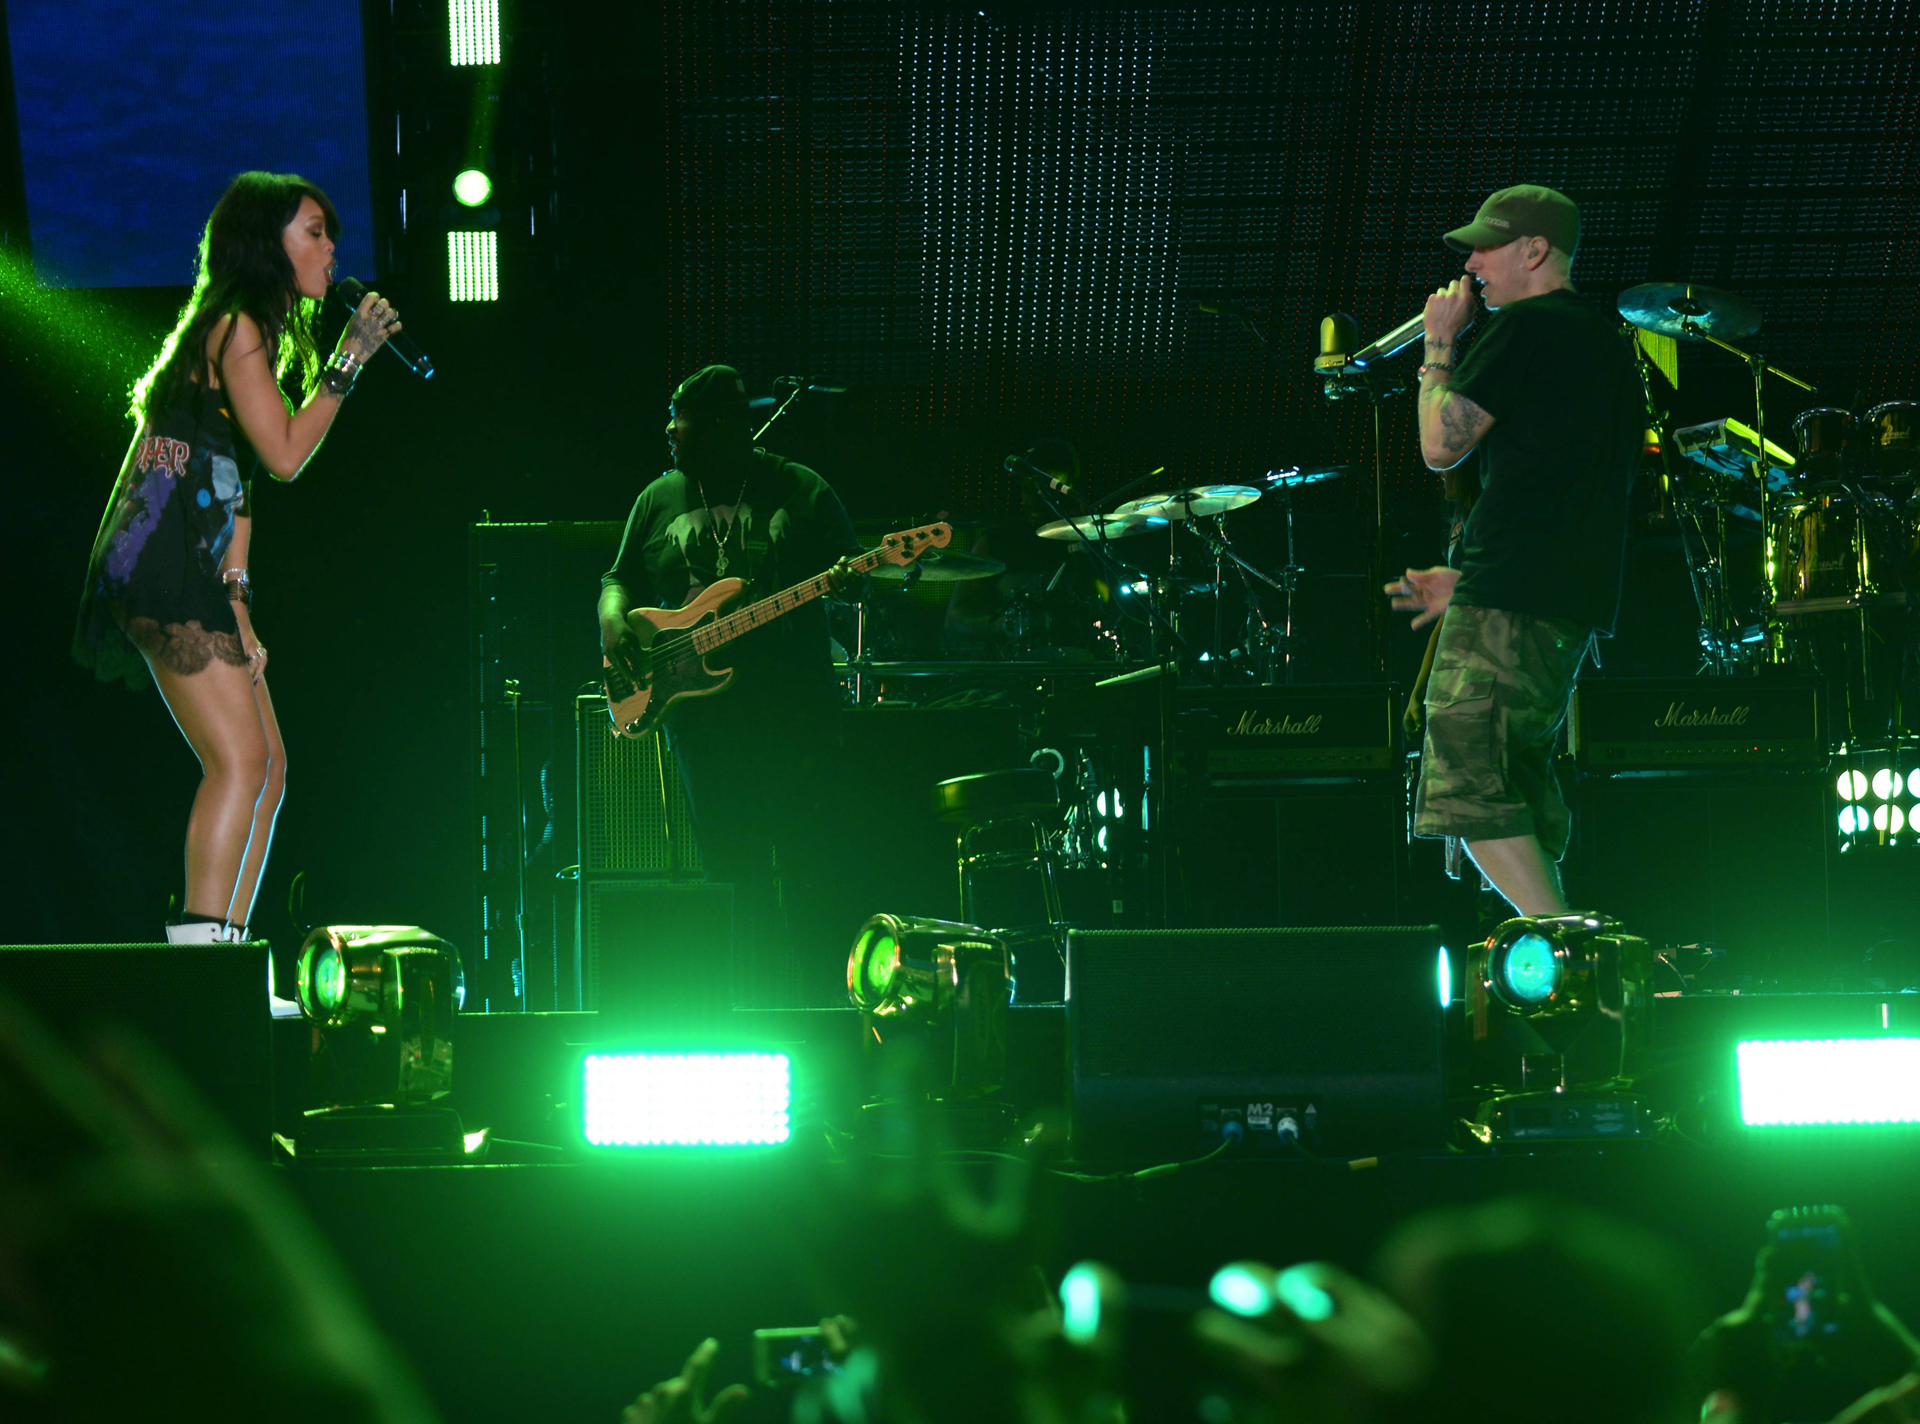 Eminem and Rihanna at The Monster Tour (Rose Bowl)